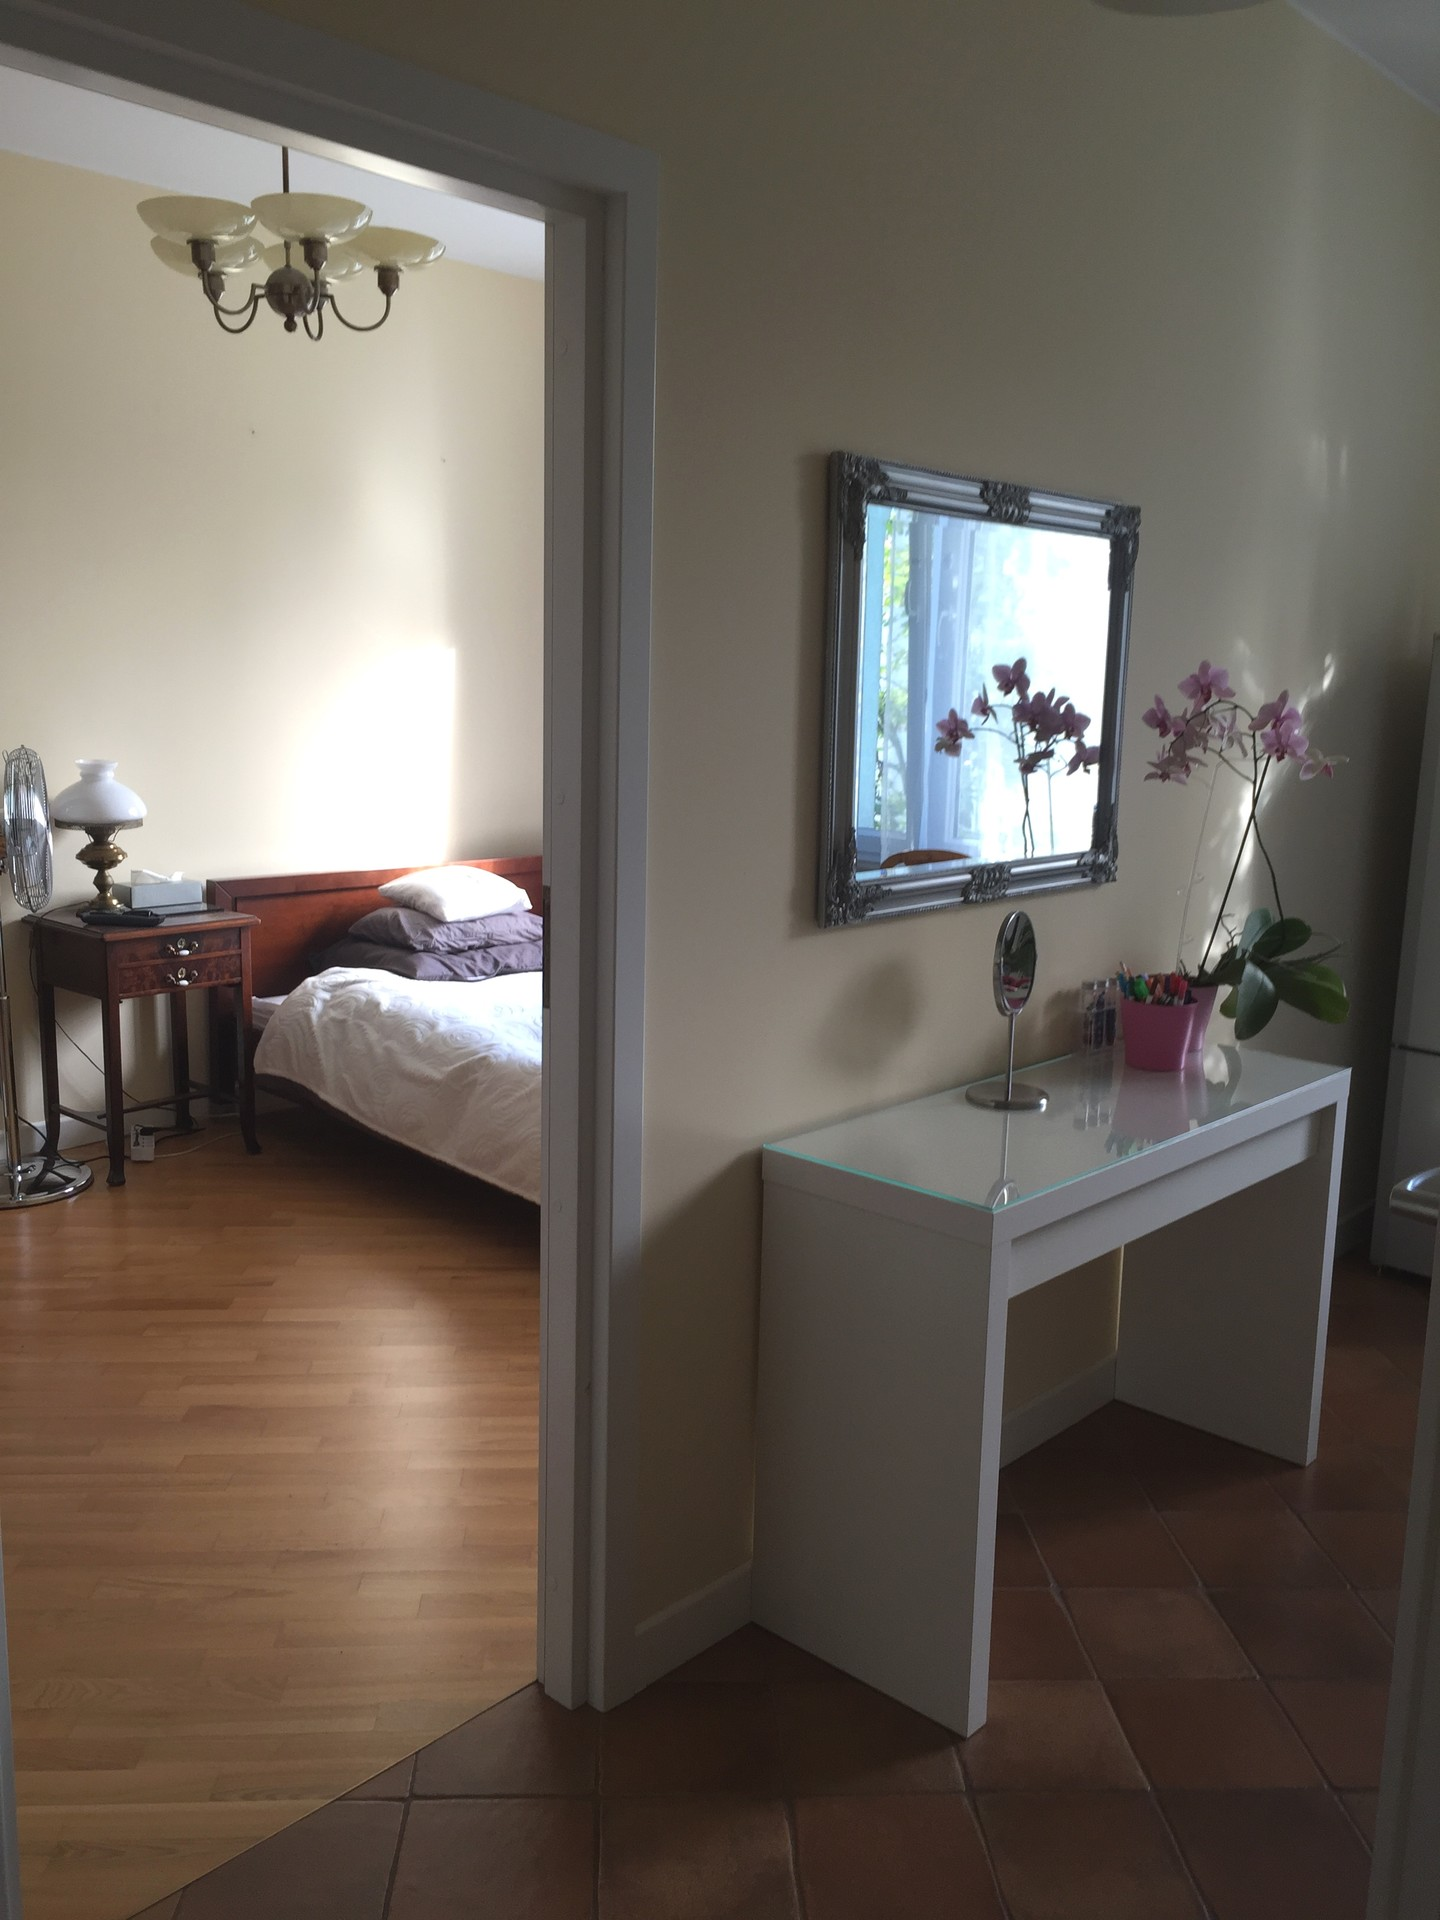 Rooms: Nice Apartment With Two Rooms, 50 M2. Quick And Easy Access To The City Centre And Universities